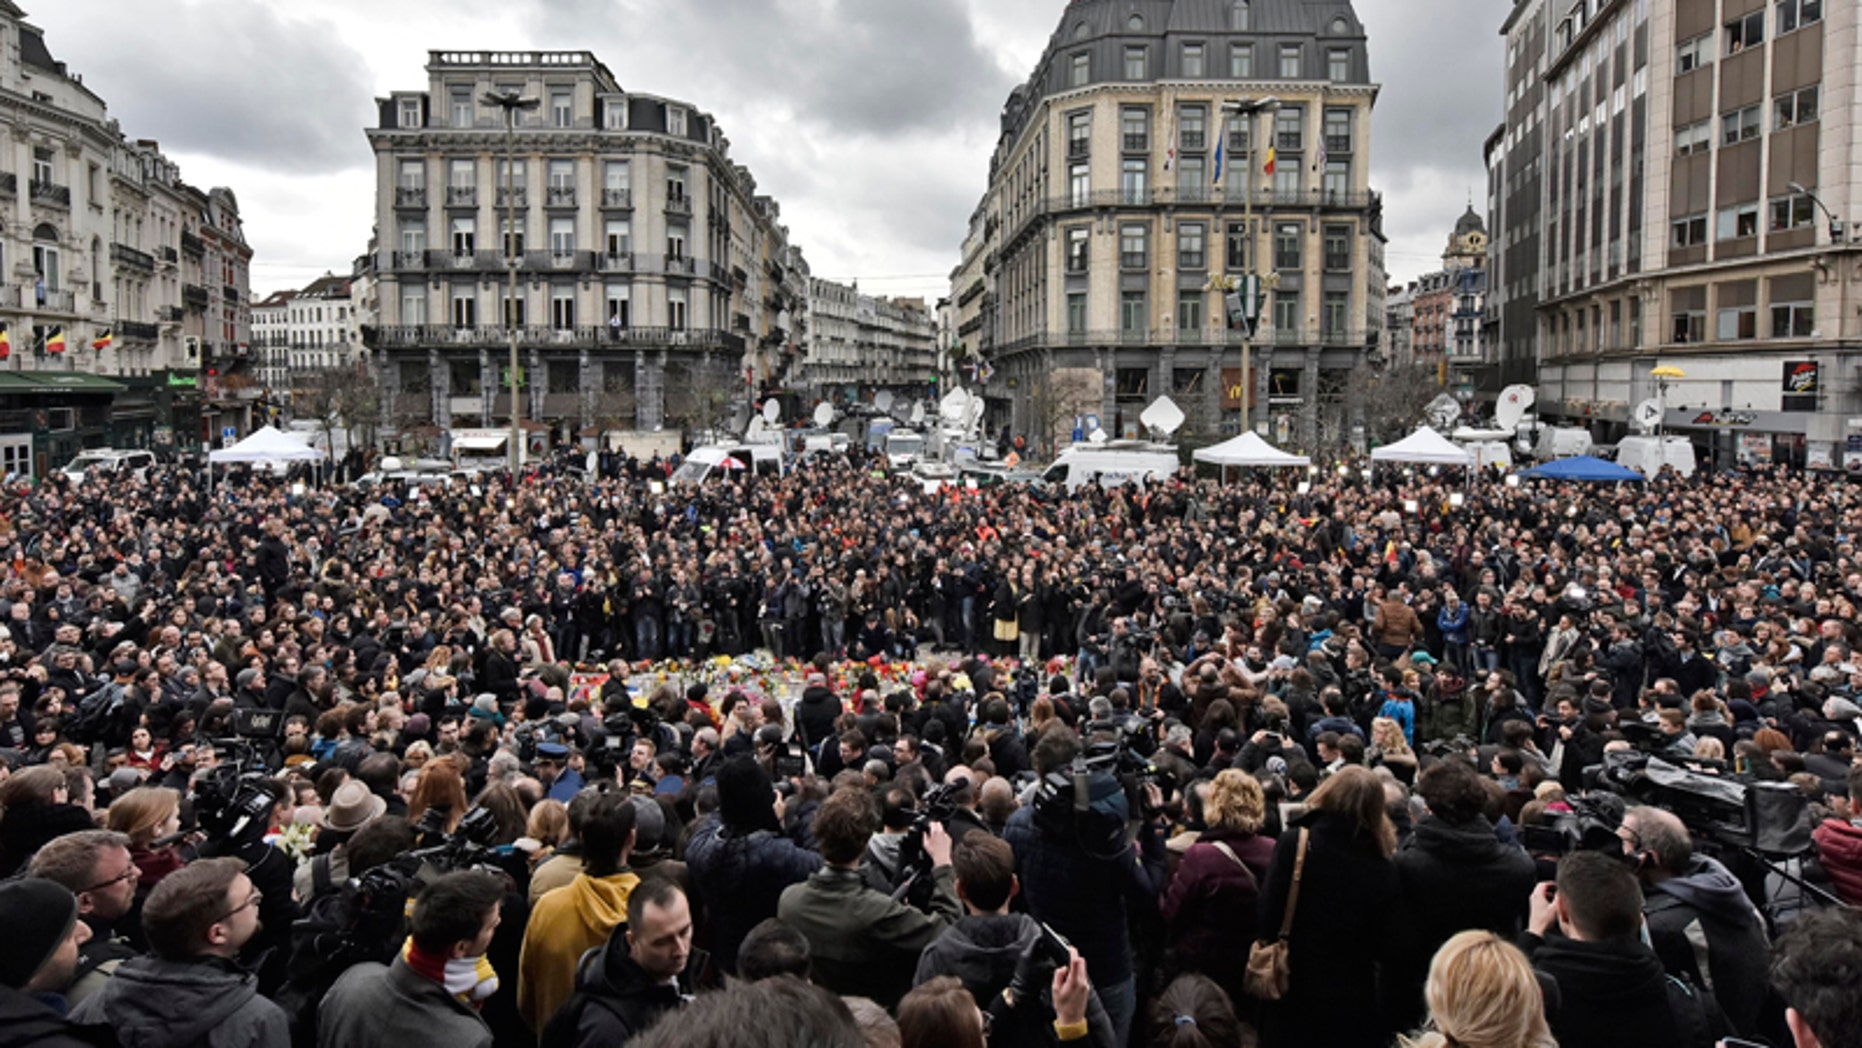 People observe a minute of silence at the Place de la Bourse in the center of Brussels, Wednesday, March 23, 2016. Bombs exploded yesterday at the Brussels airport and one of the city's metro stations Tuesday, killing and wounding scores of people, as a European capital was again locked down amid heightened security threats. (AP Photo/Martin Meissner)